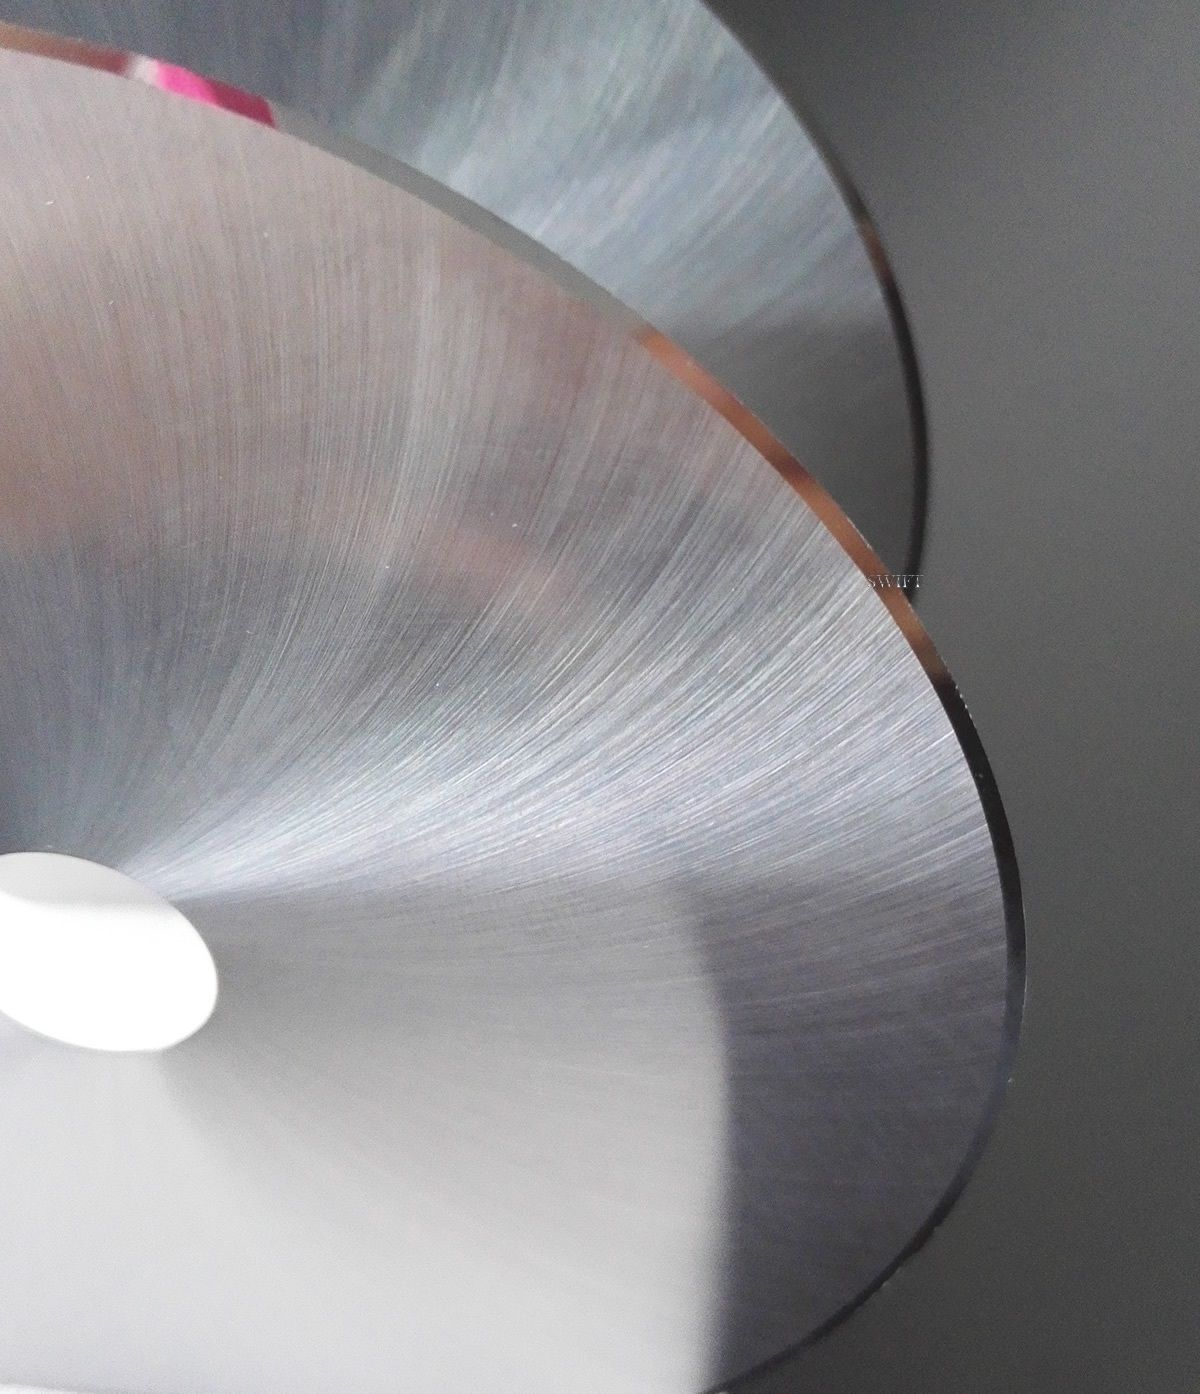 Size(mm): 100-15-0.2  //  Material: carbide  //  Application: cardboard  cutting.